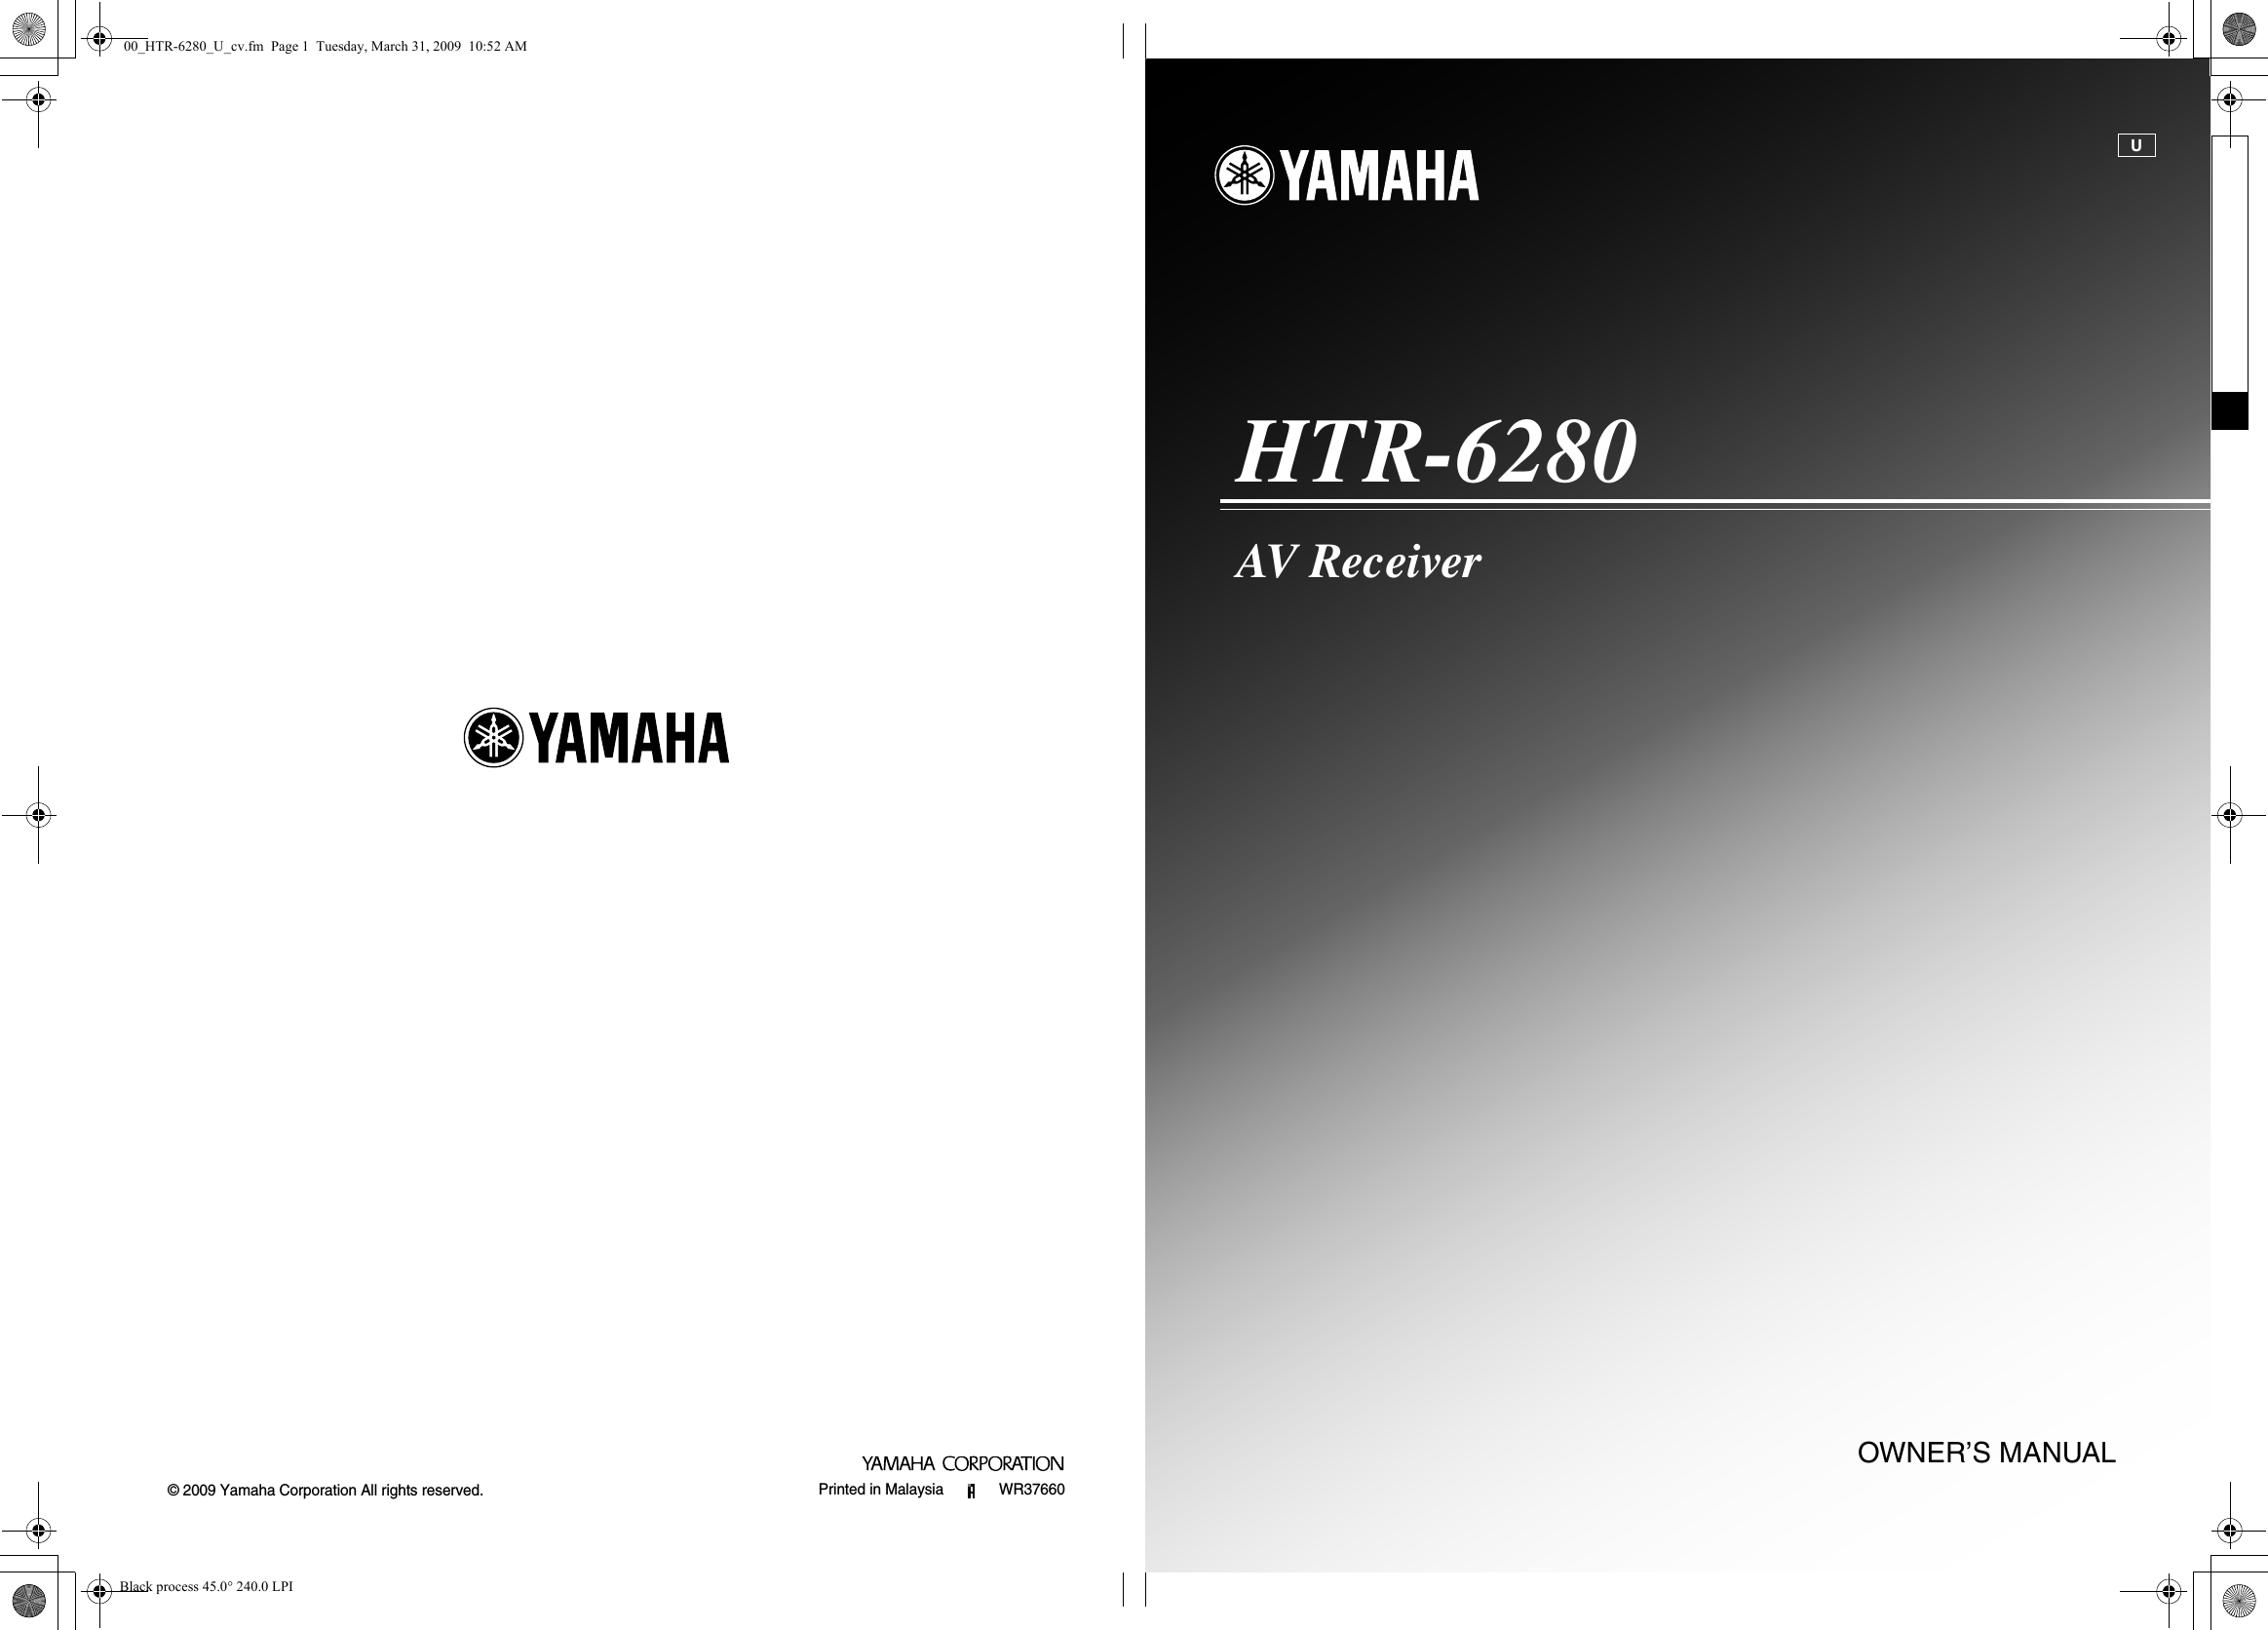 Yamaha Htr 6280 Owners Manual Calterm Electronics Pre Wired Toggle Switch 10 Amp Switches